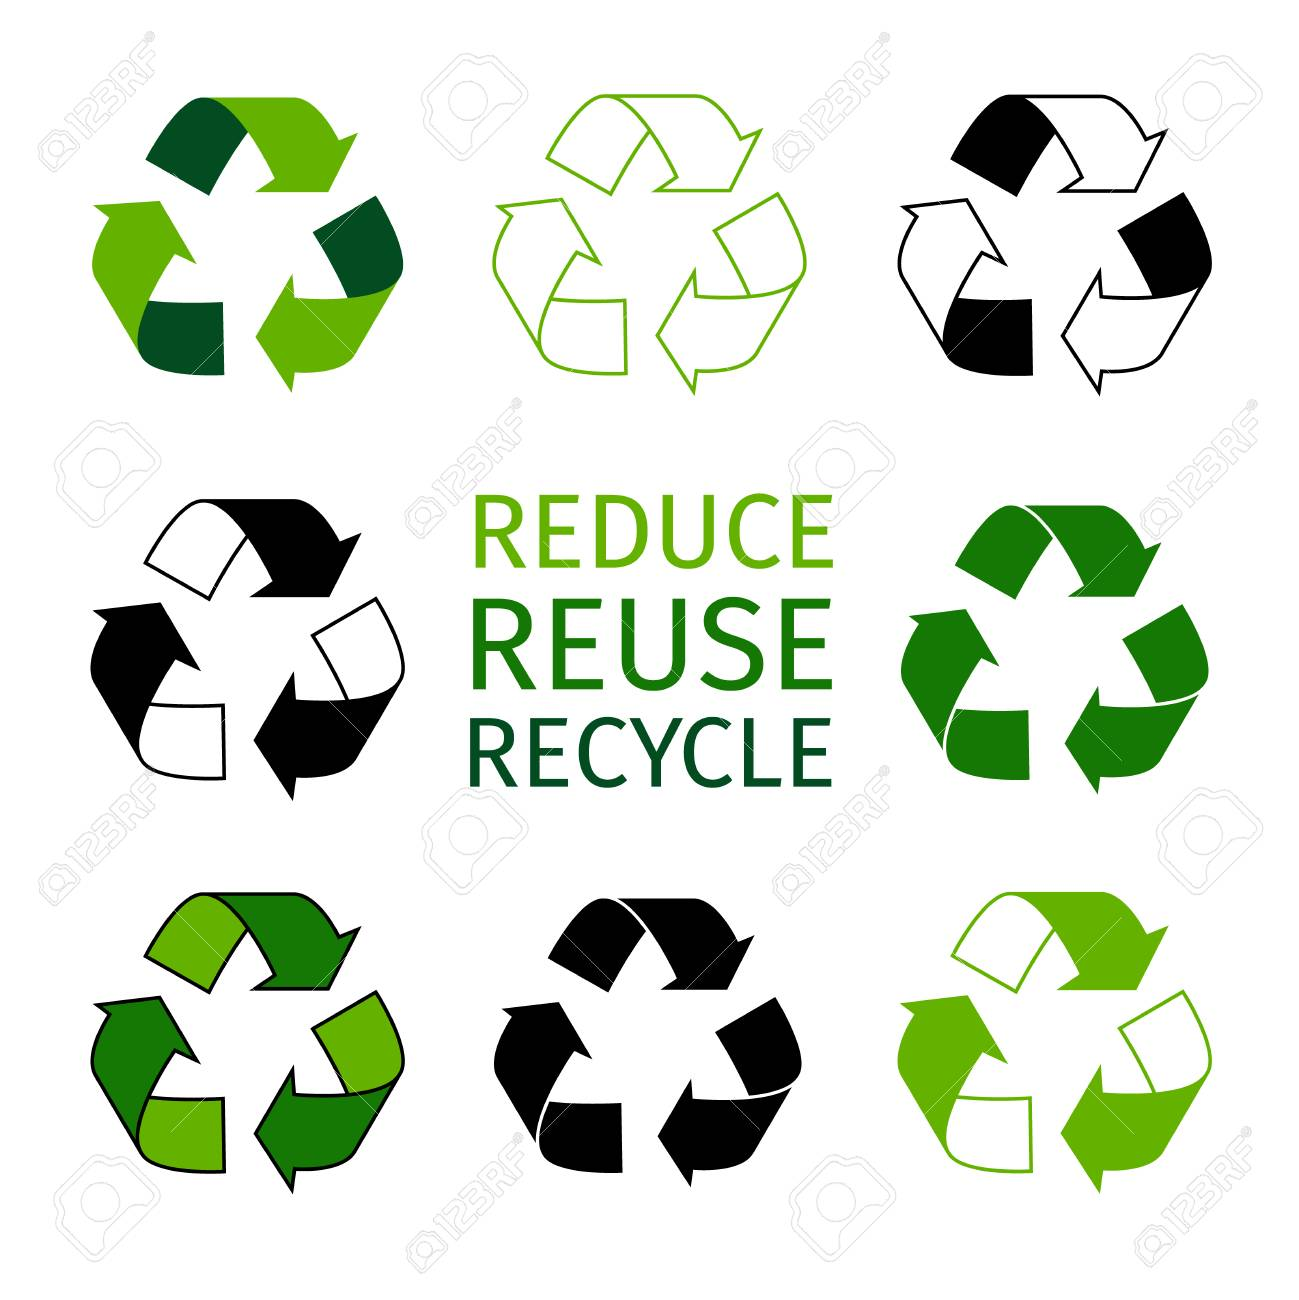 Reduce Reuse Recycle Logotype Set Green Arrows Recycle Eco Symbols